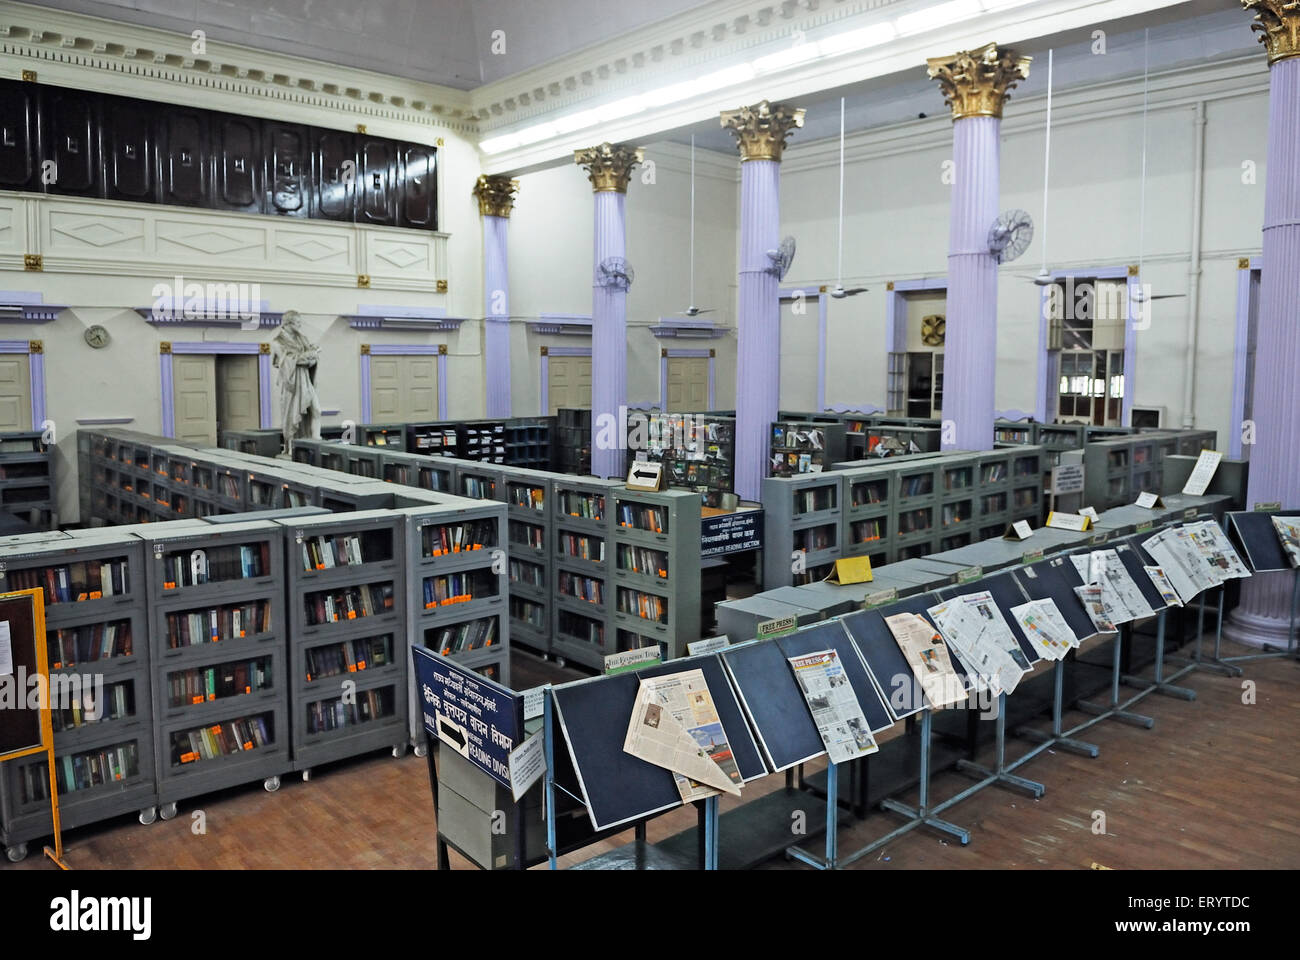 Newspaper stand and book shelves in town hall asiatic library Bombay Mumbai ; Maharashtra ; India - Stock Image